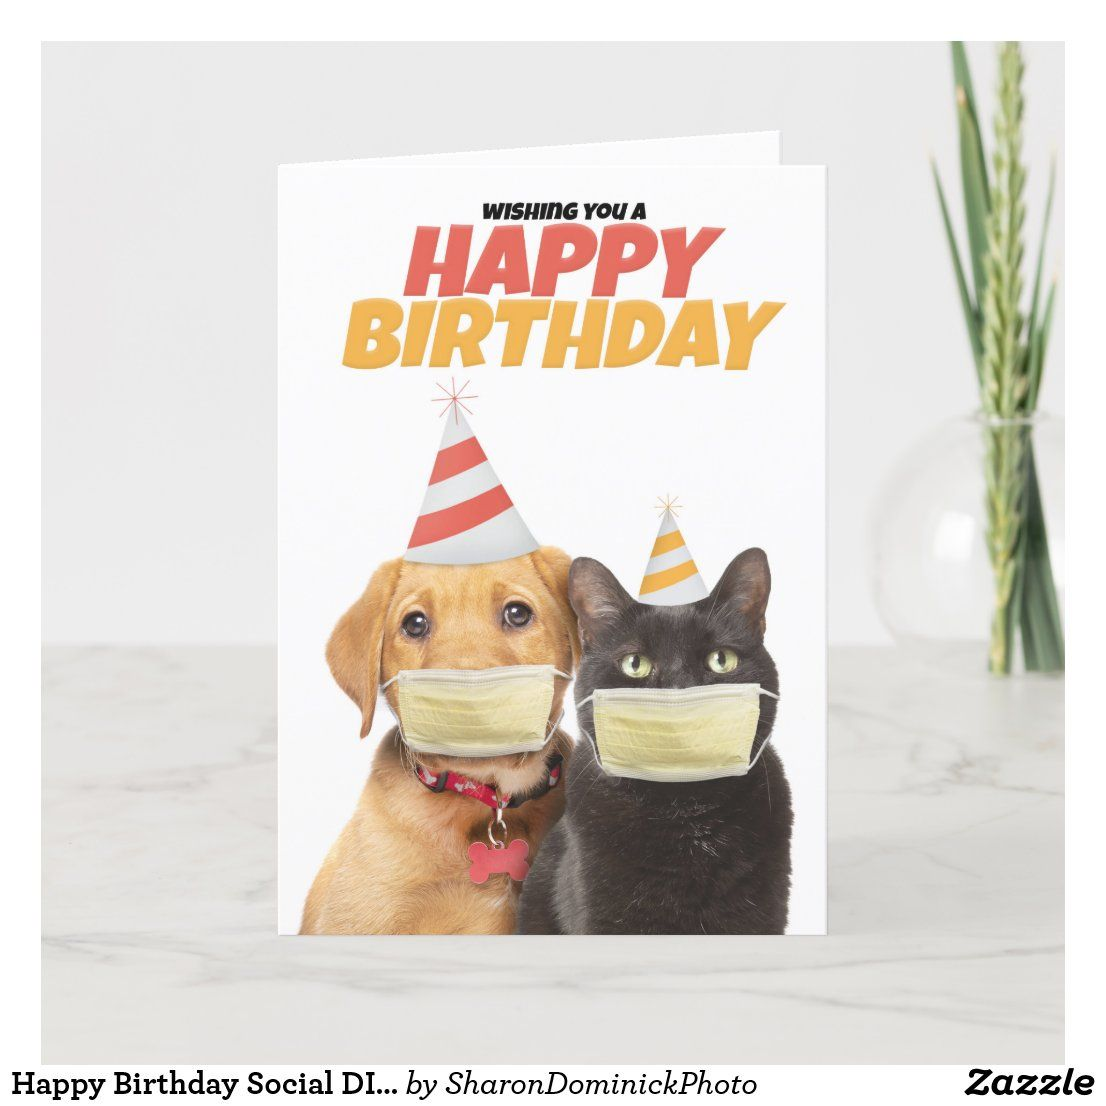 Happy Birthday Social Distancing Cat And Dog Humor Holiday Card Zazzle Com In 2021 Happy Birthday Dog Happy Birthday Cat Happy Birthday